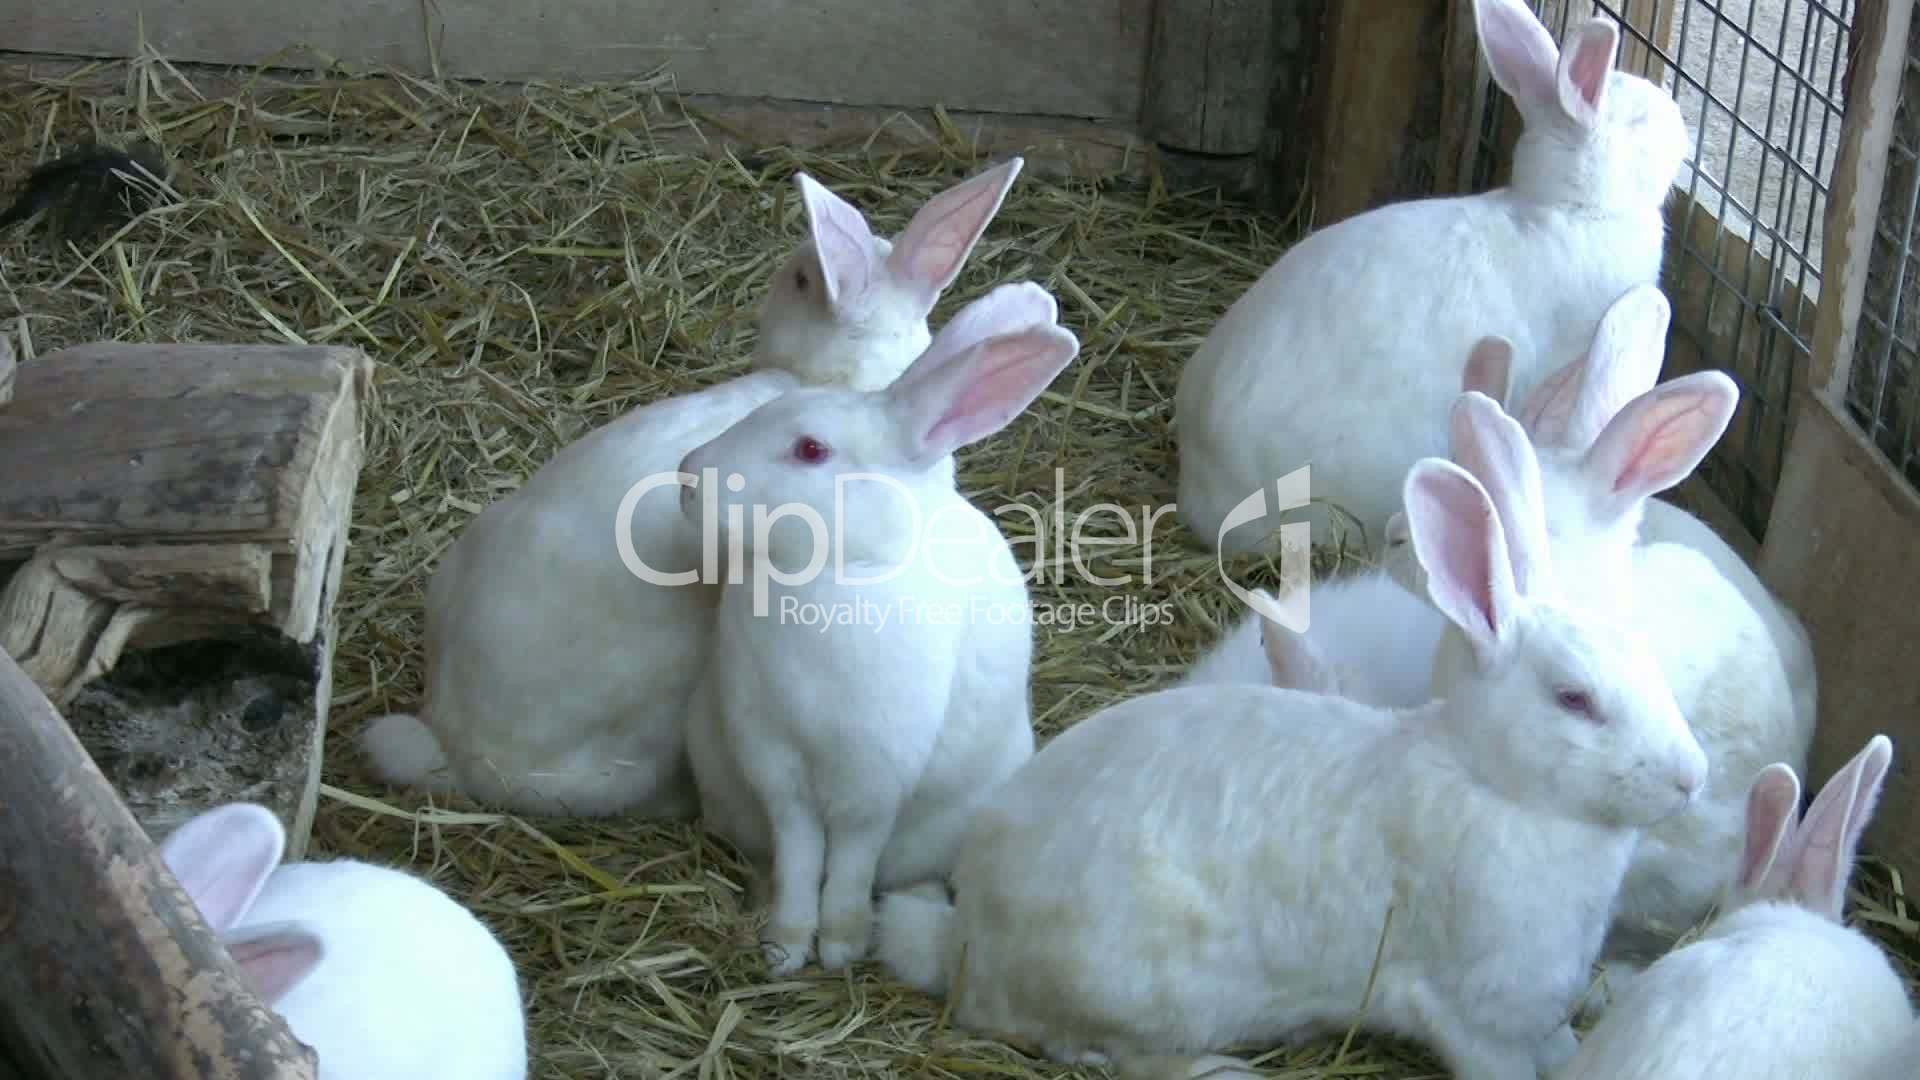 Terms Of Use >> White Rabbits: Royalty-free video and stock footage